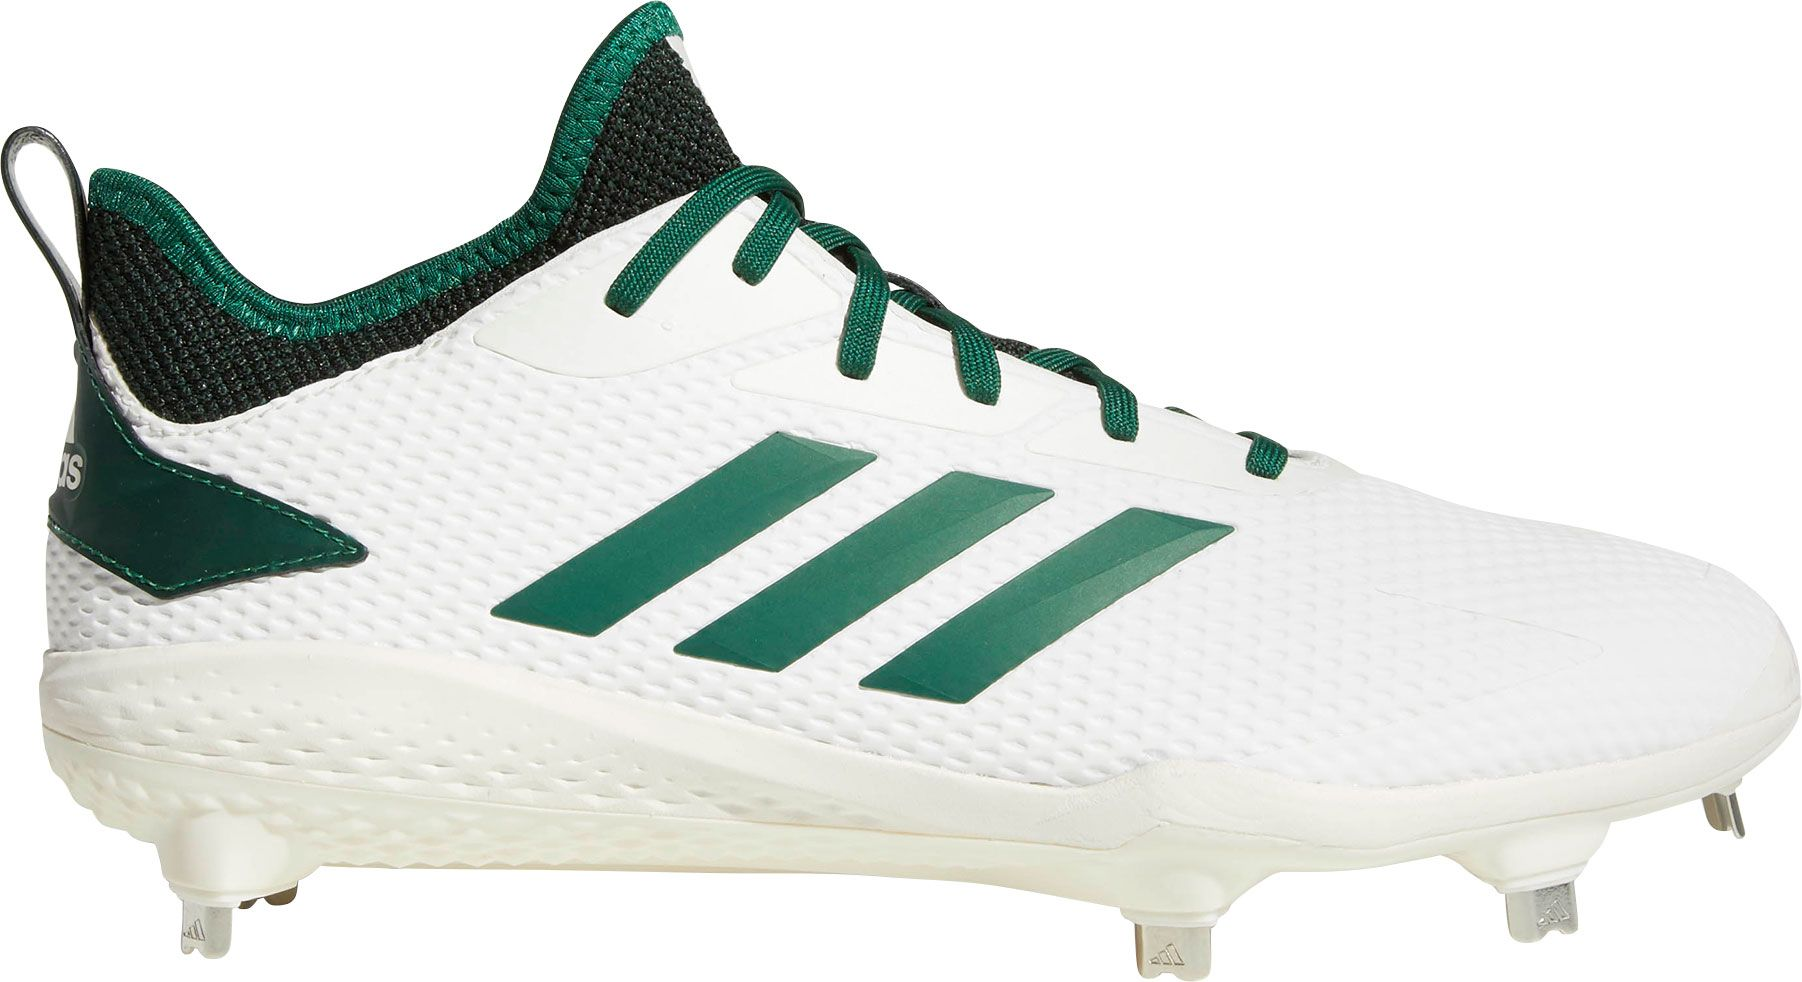 be94a8465cb3 adidas Men's adiZERO Afterburner V Metal Baseball Cleats, Size: 6.5 ...